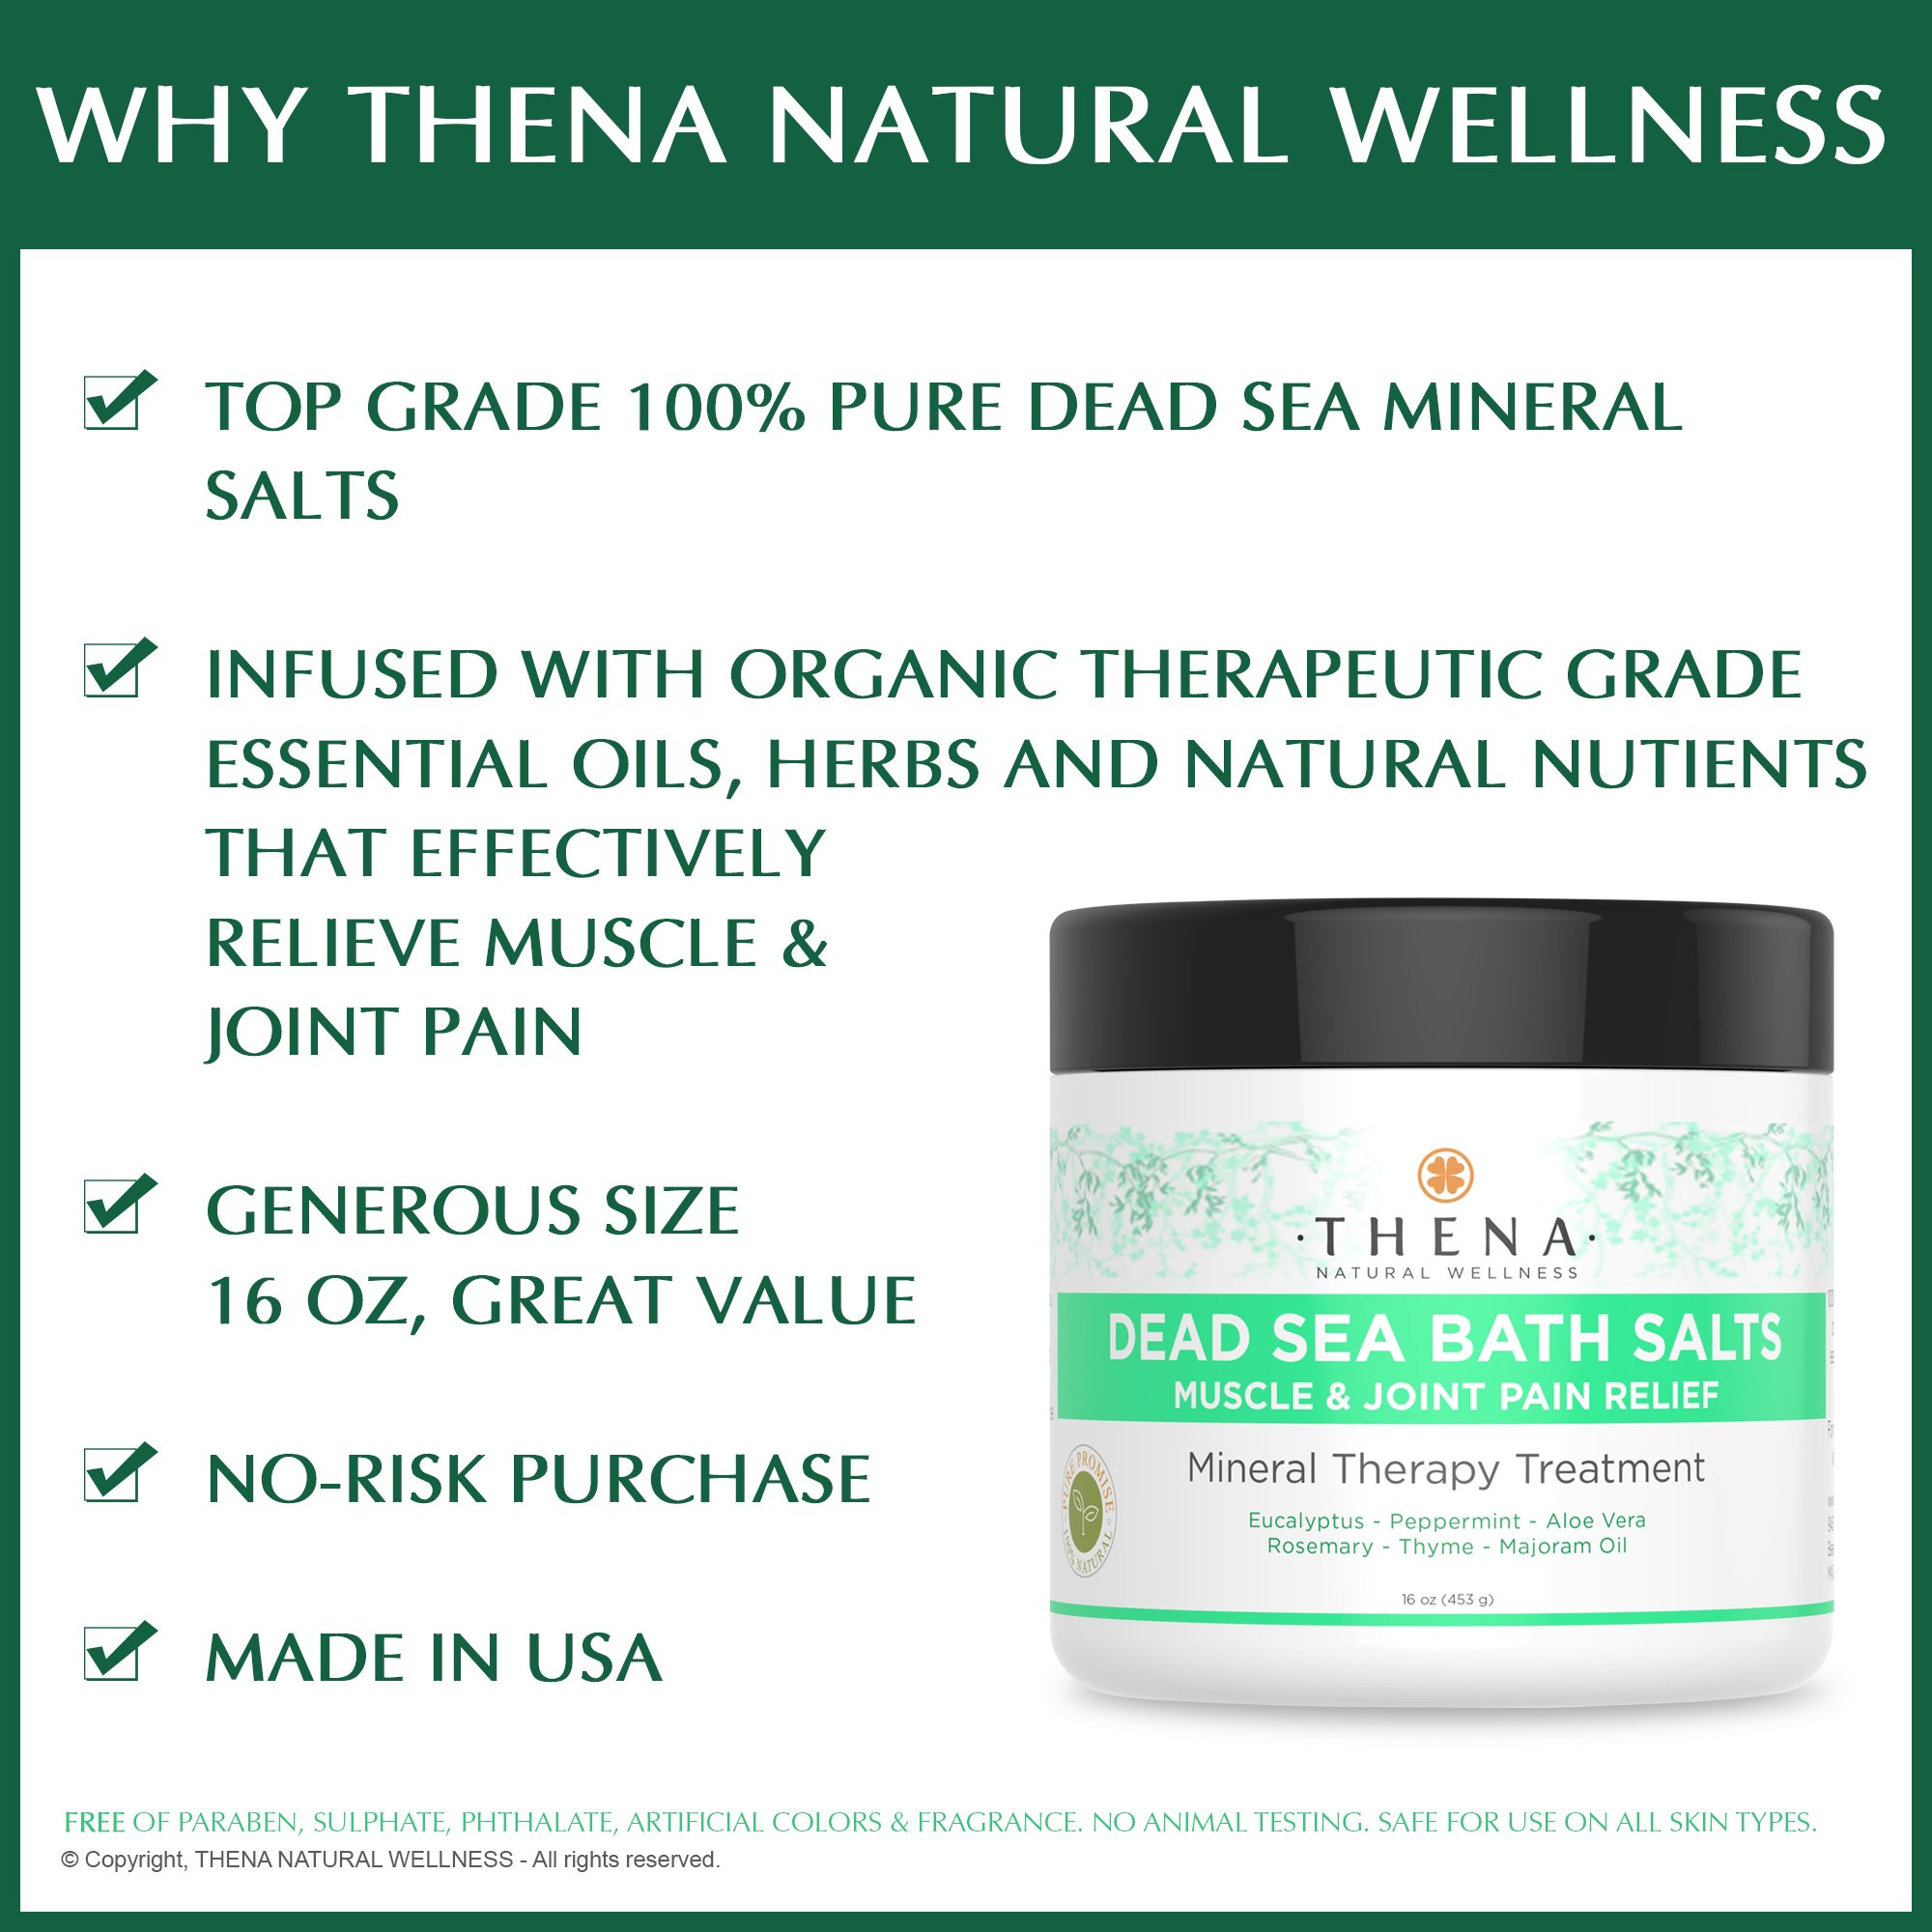 Organic Joint & Muscle Relief Soak, Natural Arthritis Remedies With Arnica & Stress Relieve Essential Oils, Best Spa Bath Sea Salts Product For Relaxation, Soothe Back Neck Shoulder Pain Aches Tension by THENA Natural Wellness (Image #3)